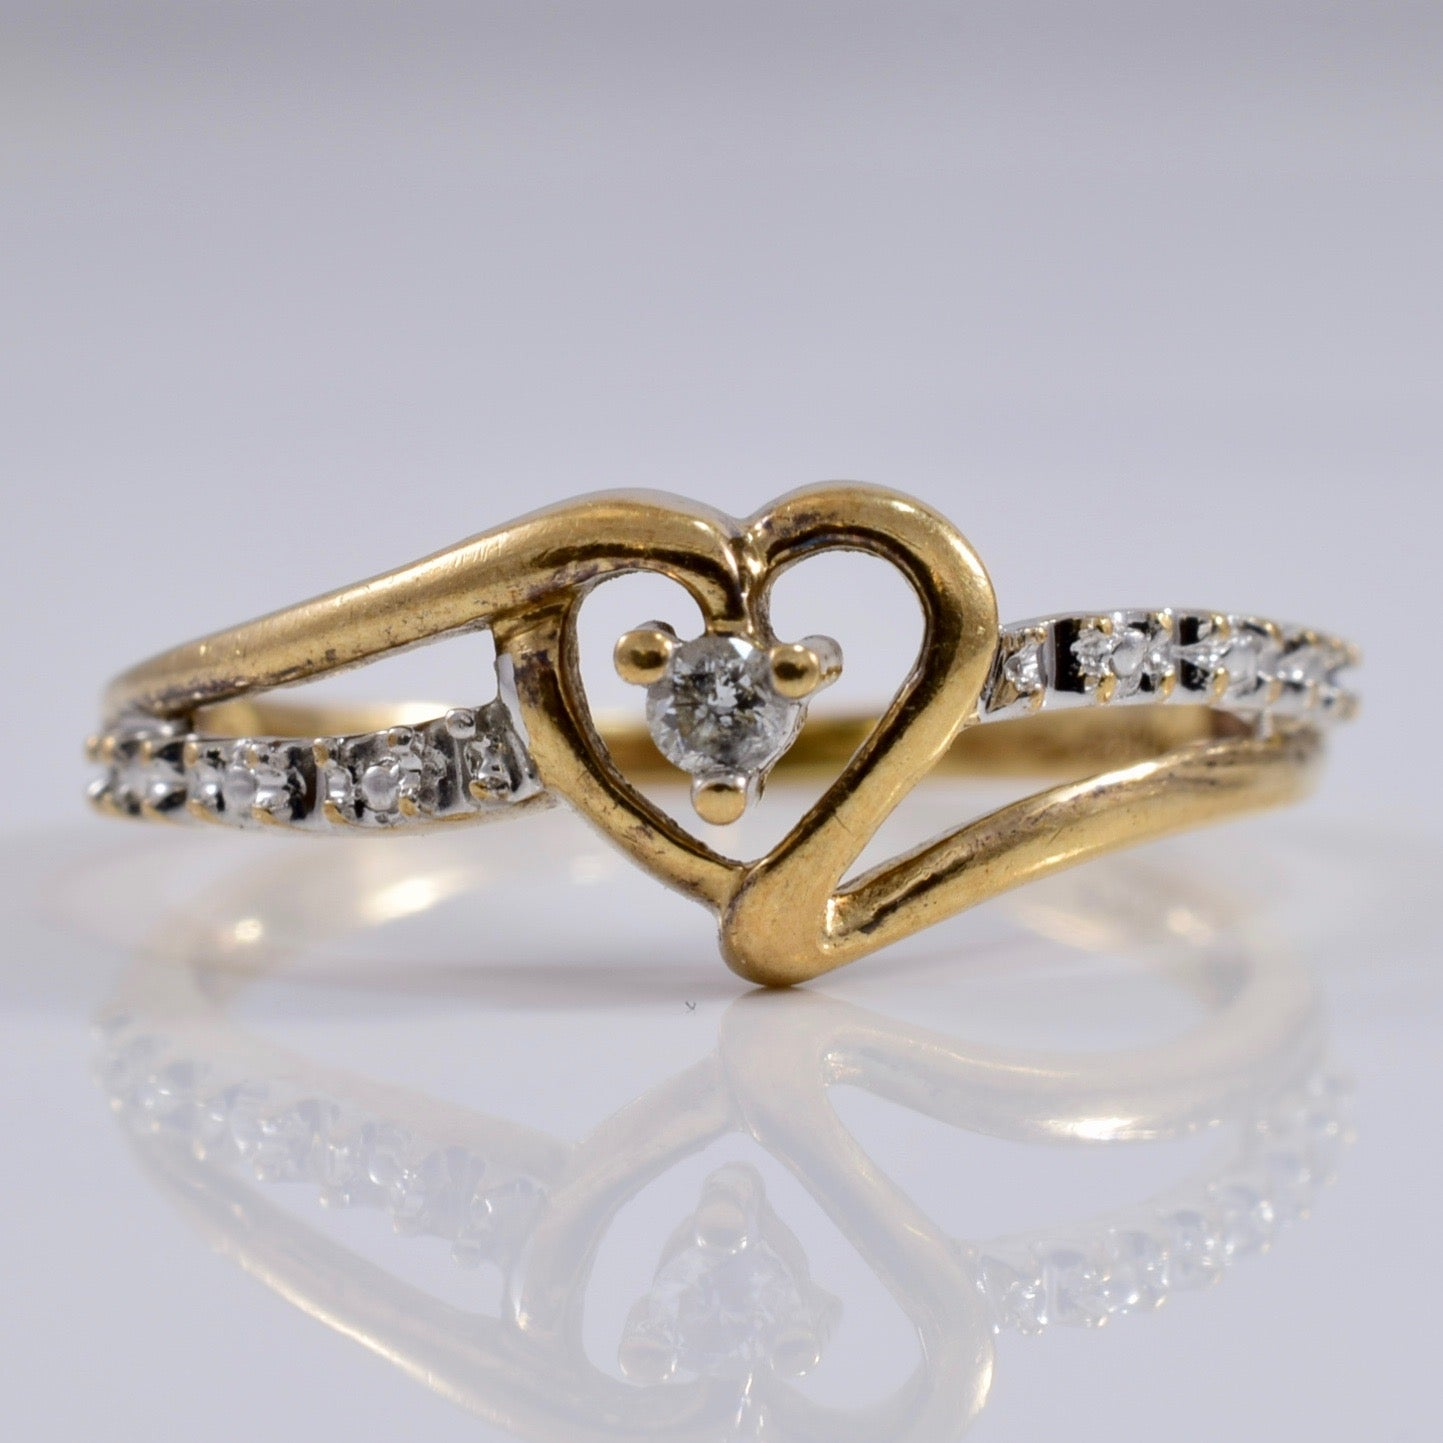 Heart Shaped Ring With Diamond Accents | 0.03 ctw SZ 5 |